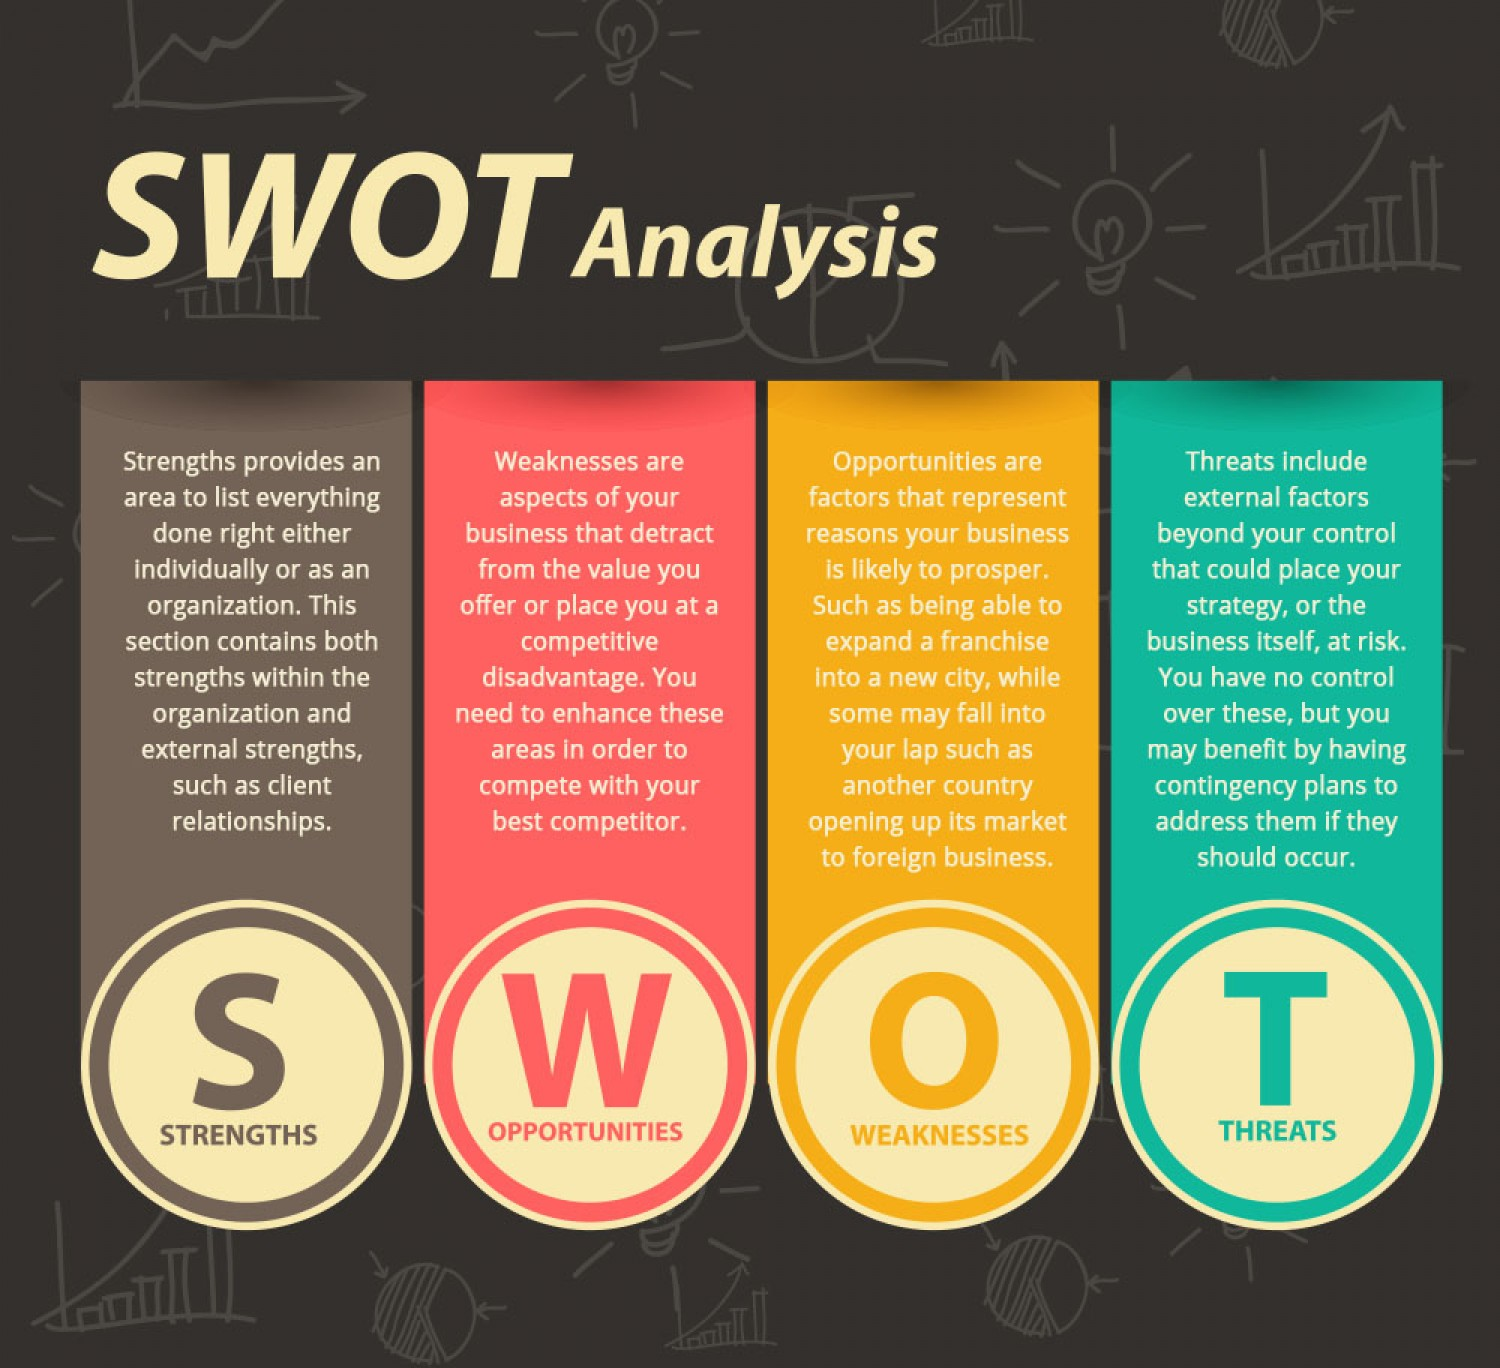 conducting swot analysis To conduct a swot analysis, identify the 1 strengths: internal competence can  use to exploit the externa resources, certifications, experien swot is to 2.